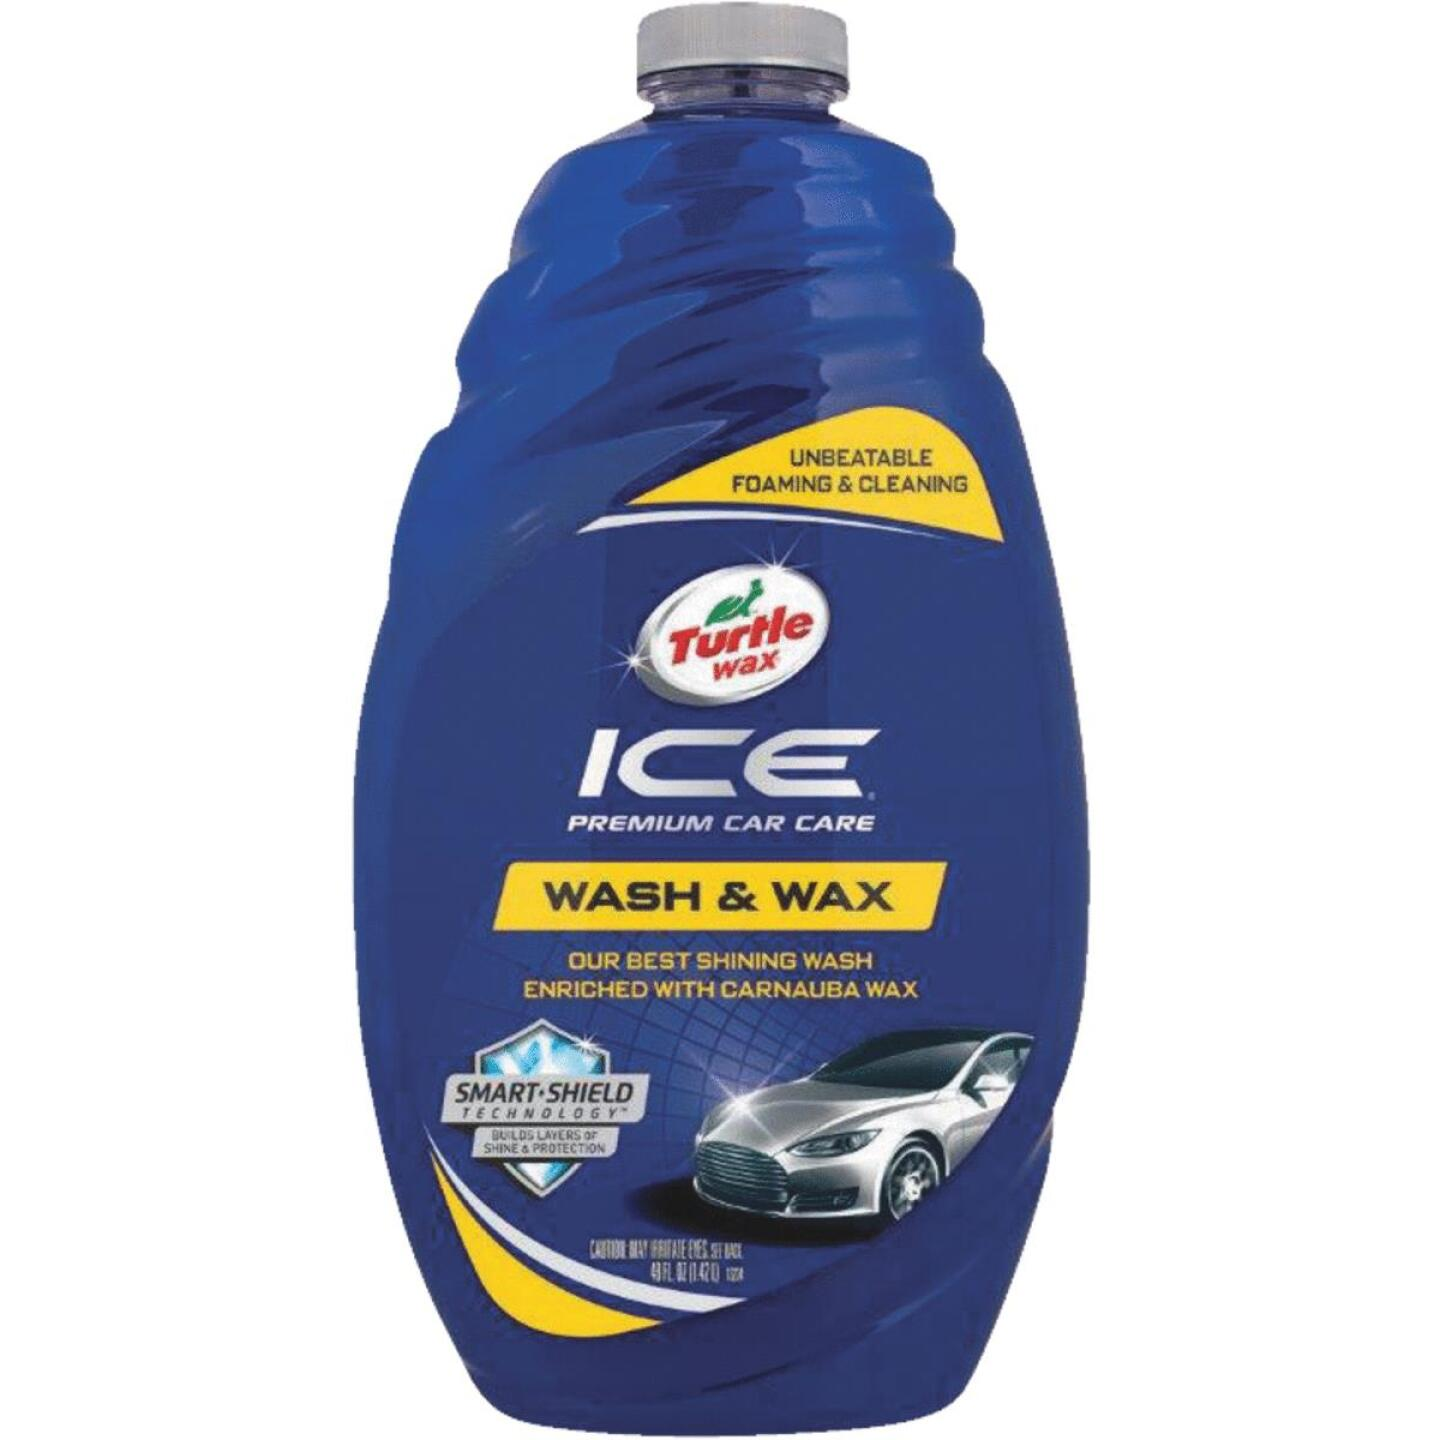 Turtle Wax ICE Liquid 48 oz Car Wash Image 1